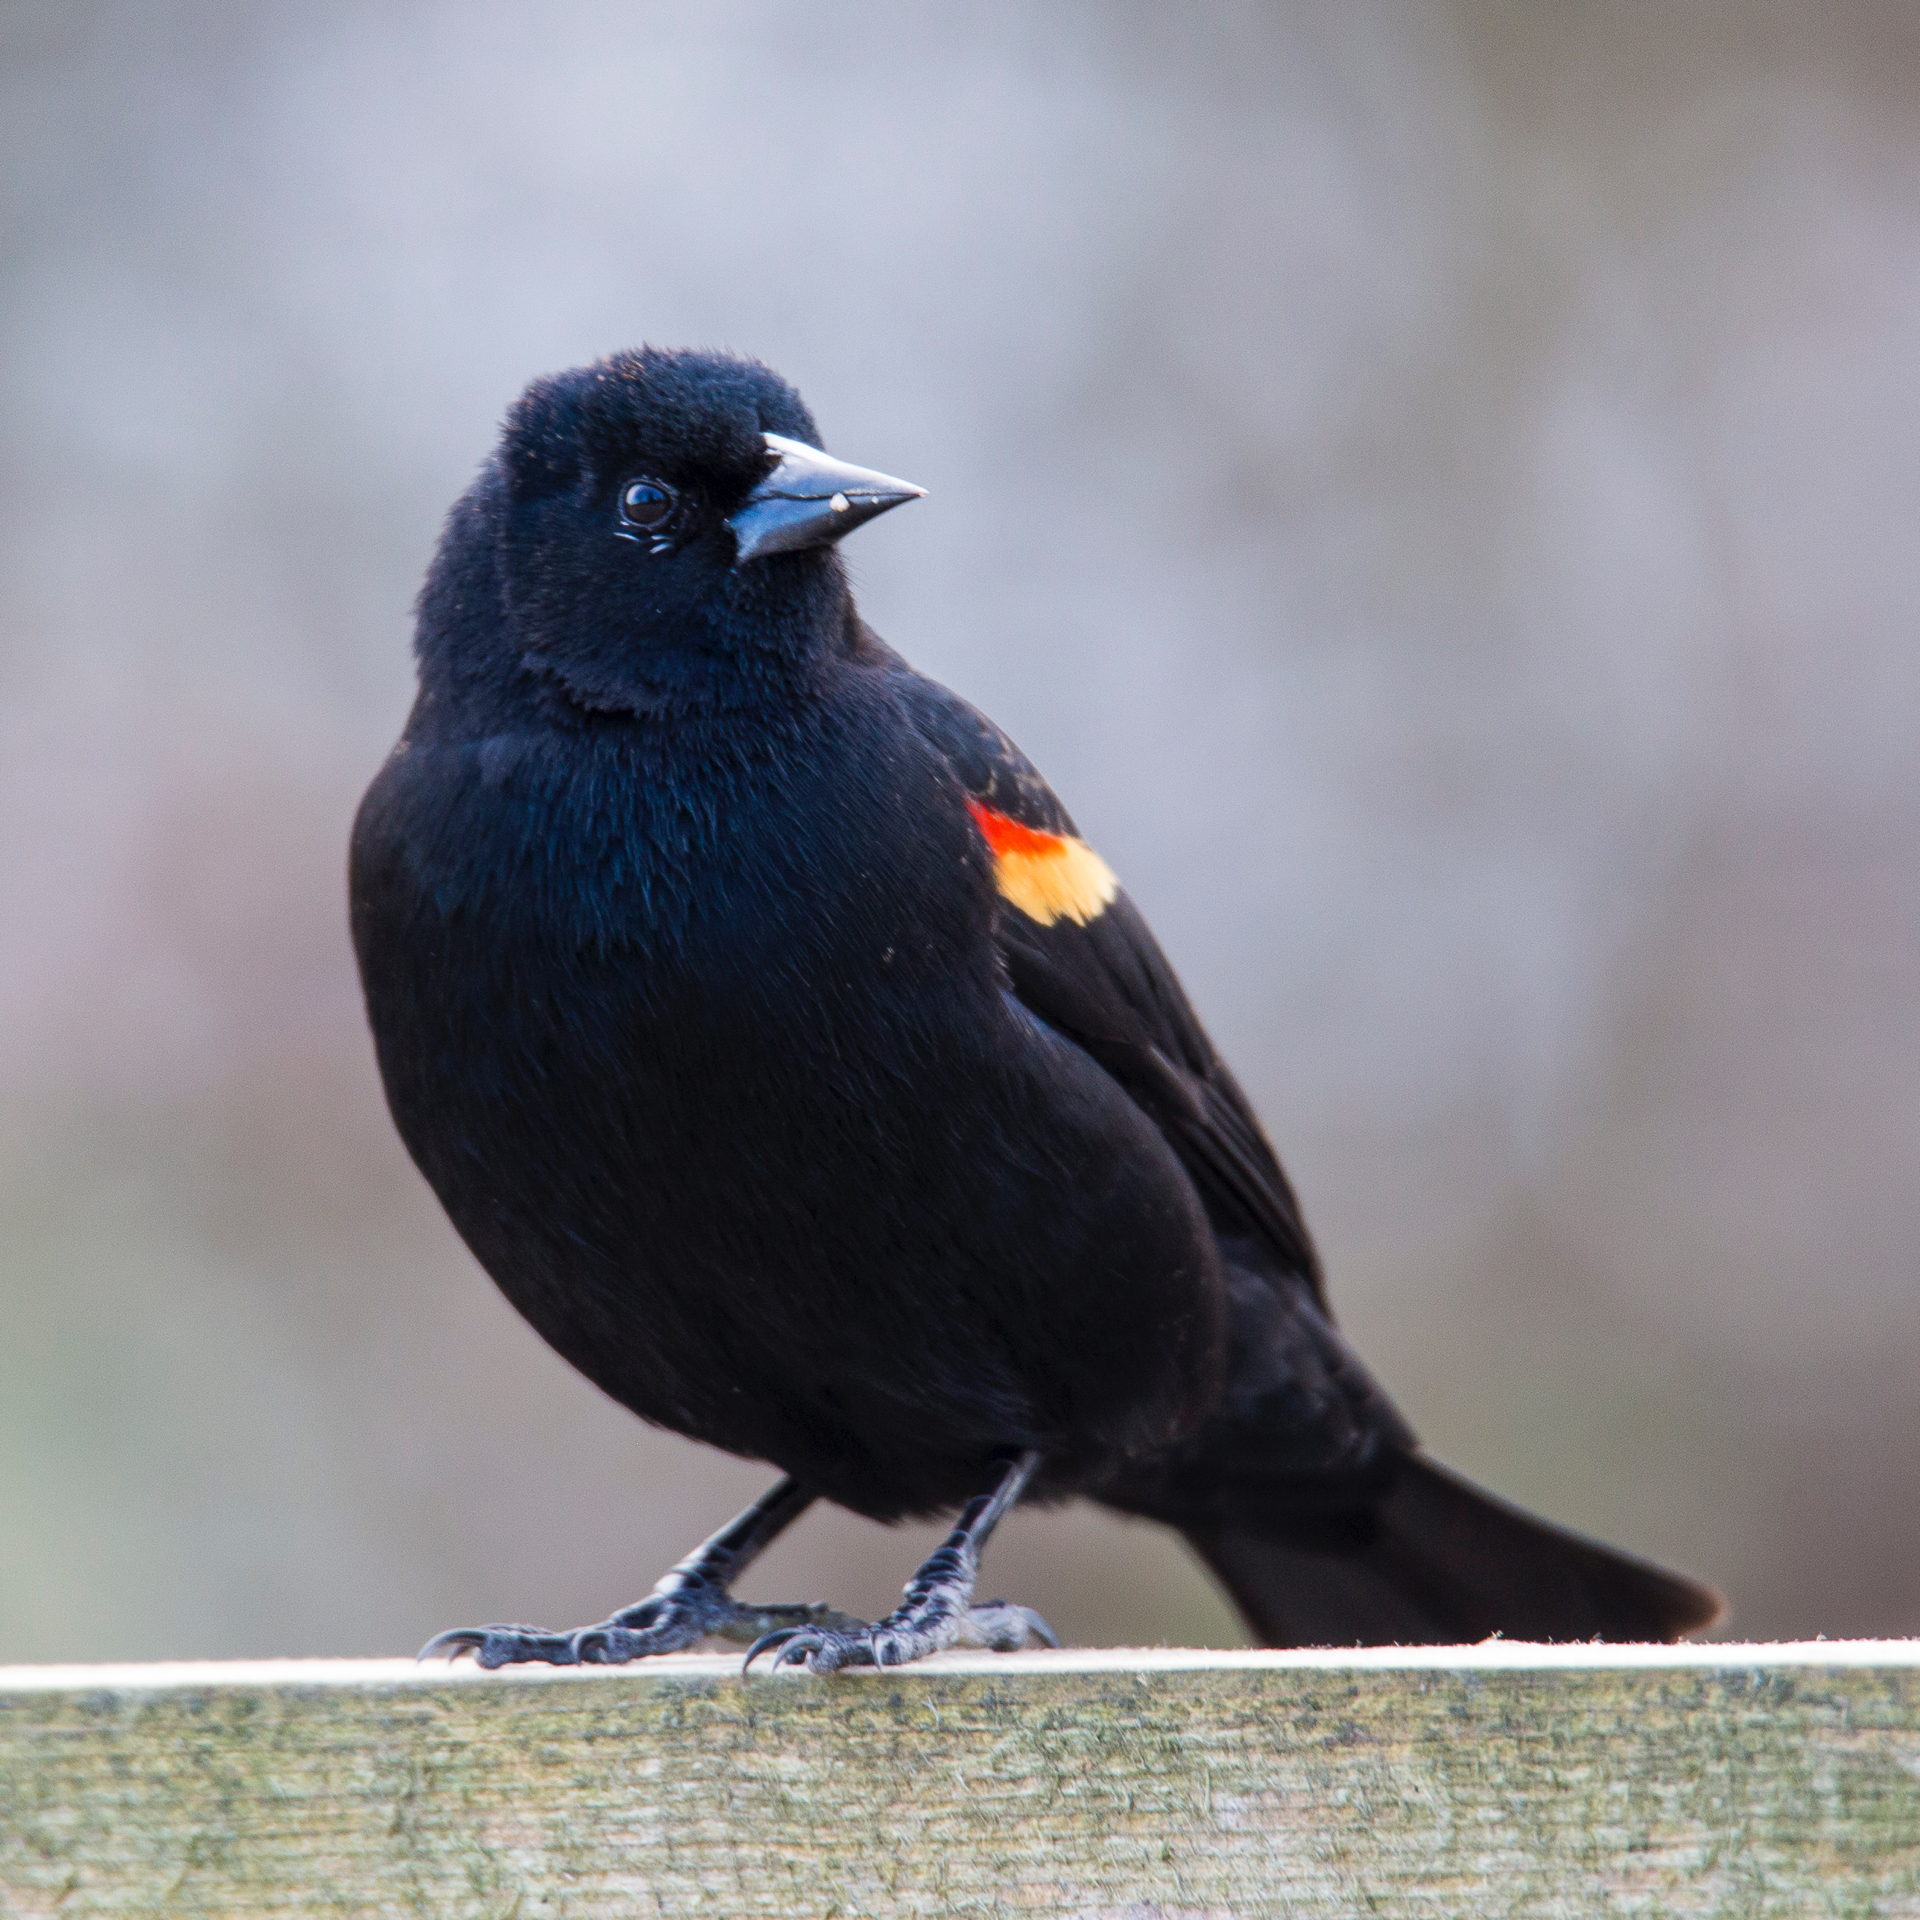 There were lots of red-winged blackbirds around.